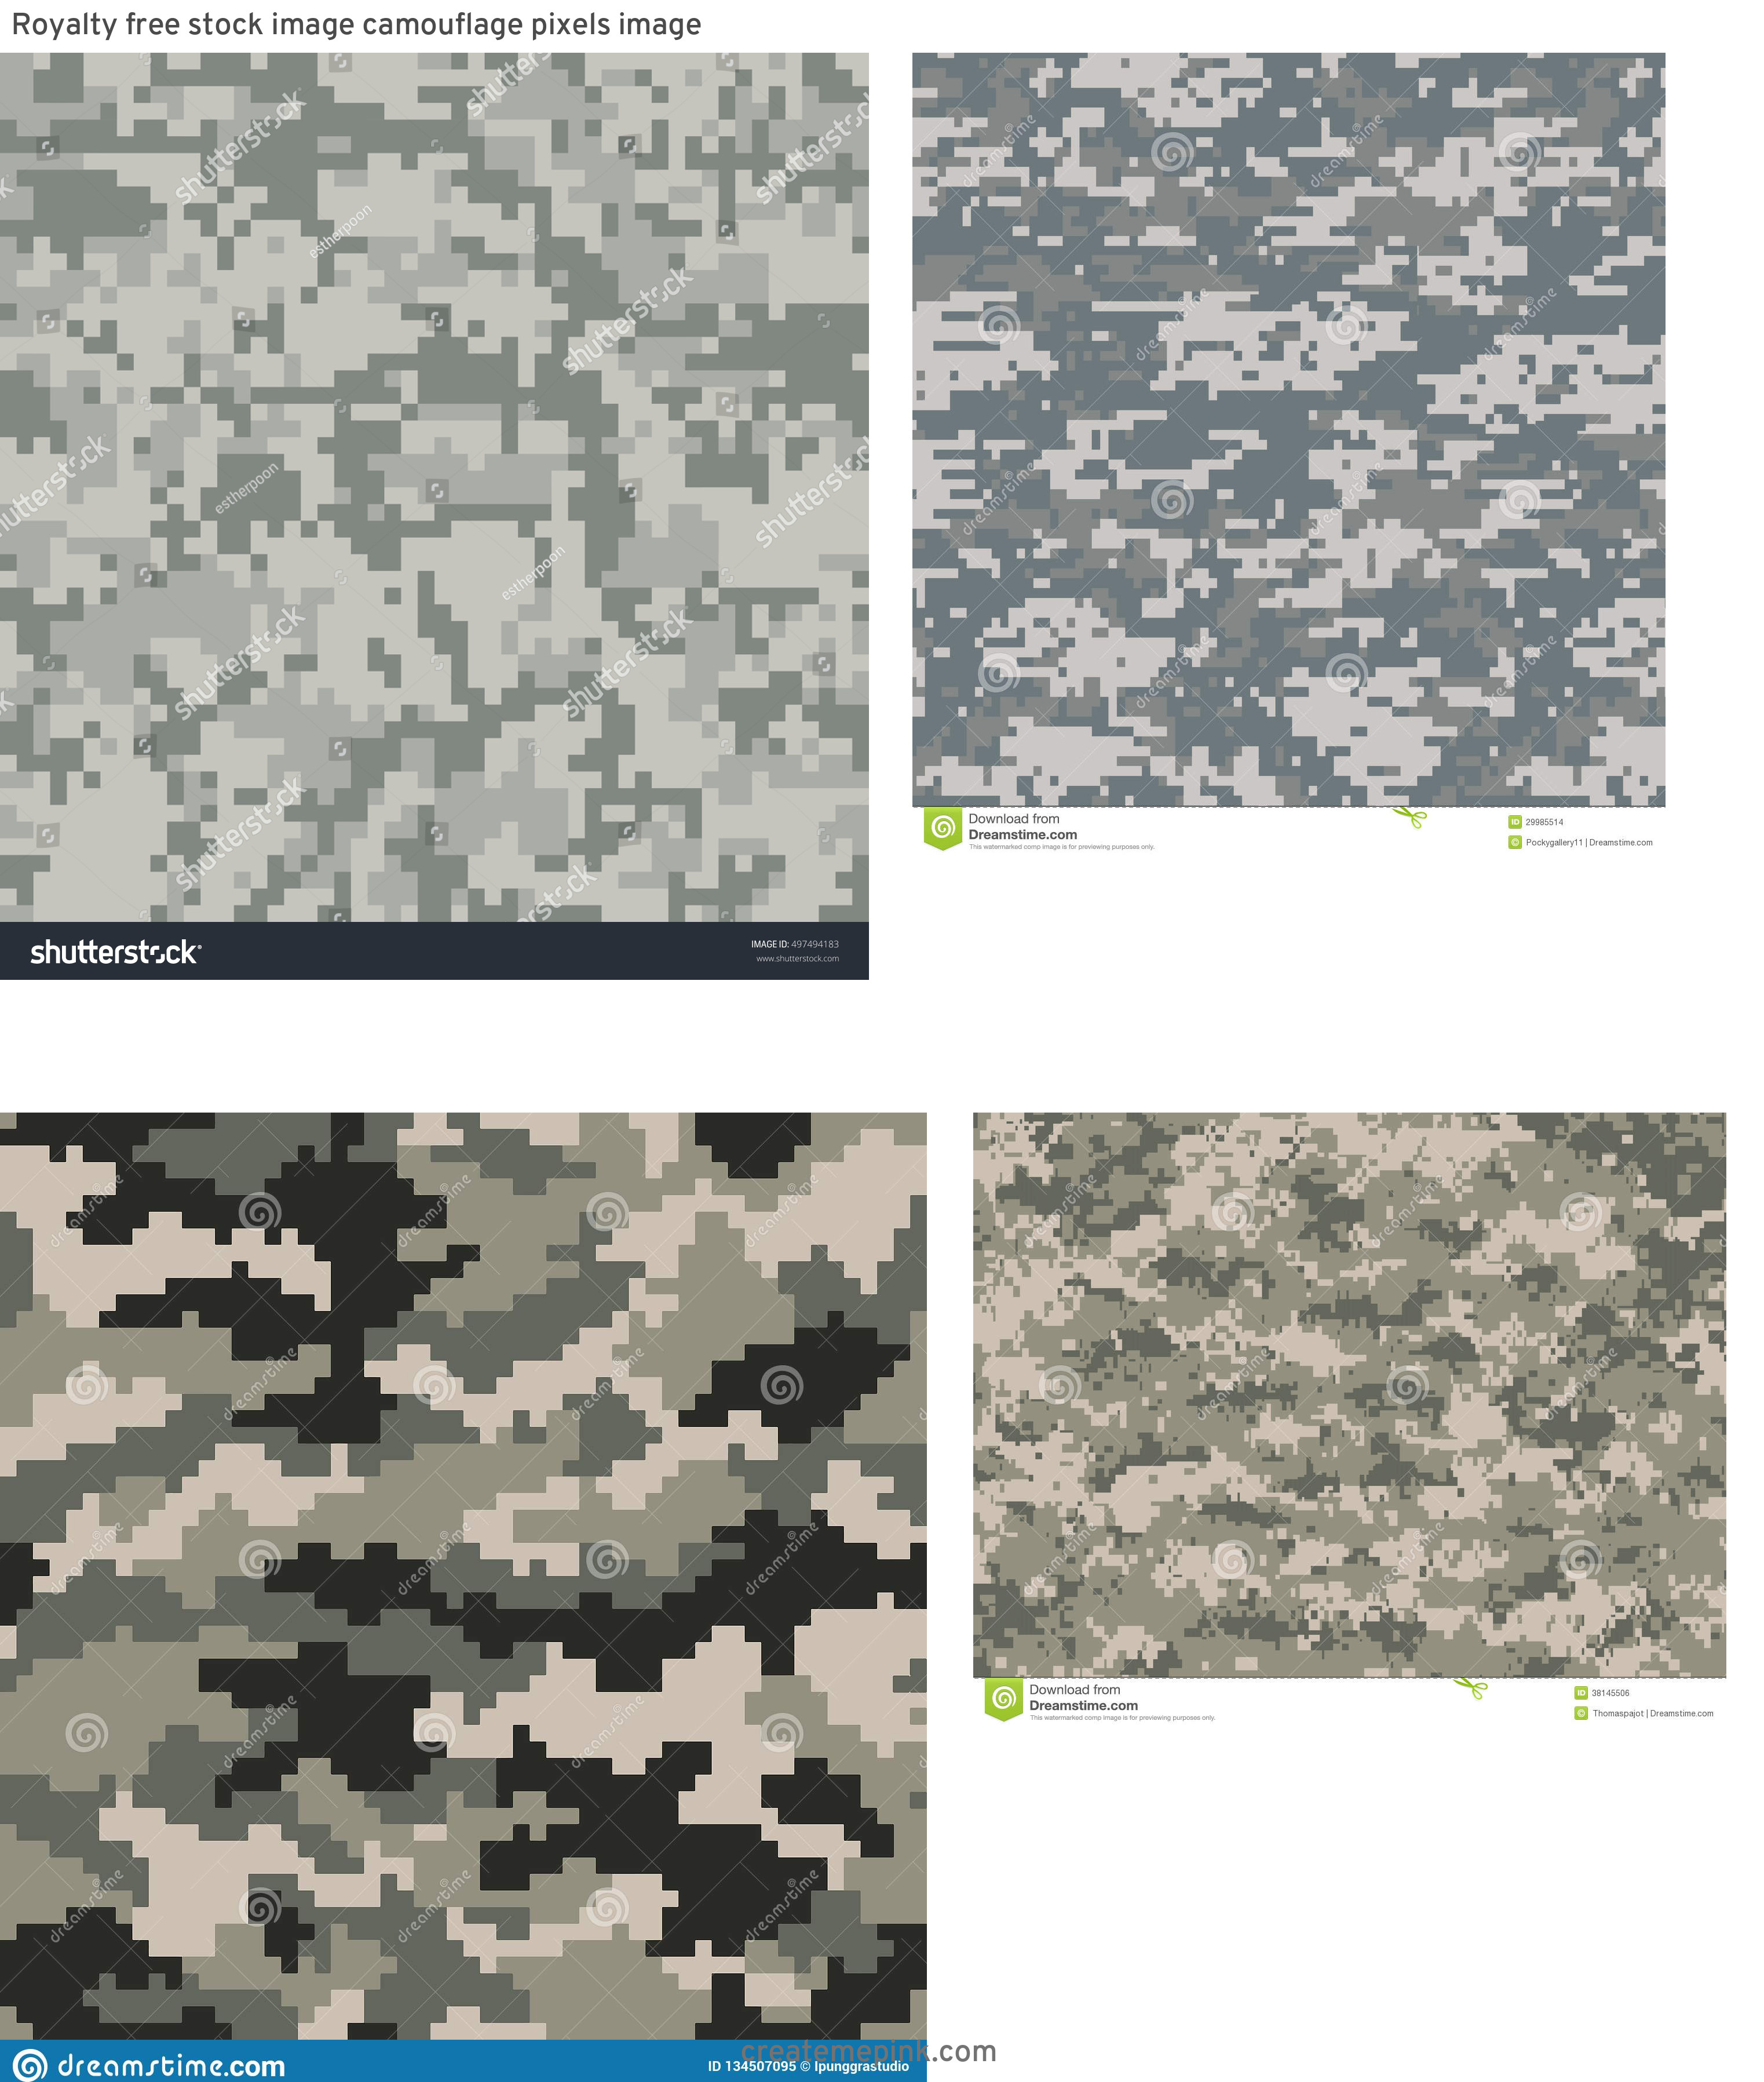 ACU Pattern Vector: Royalty Free Stock Image Camouflage Pixels Image